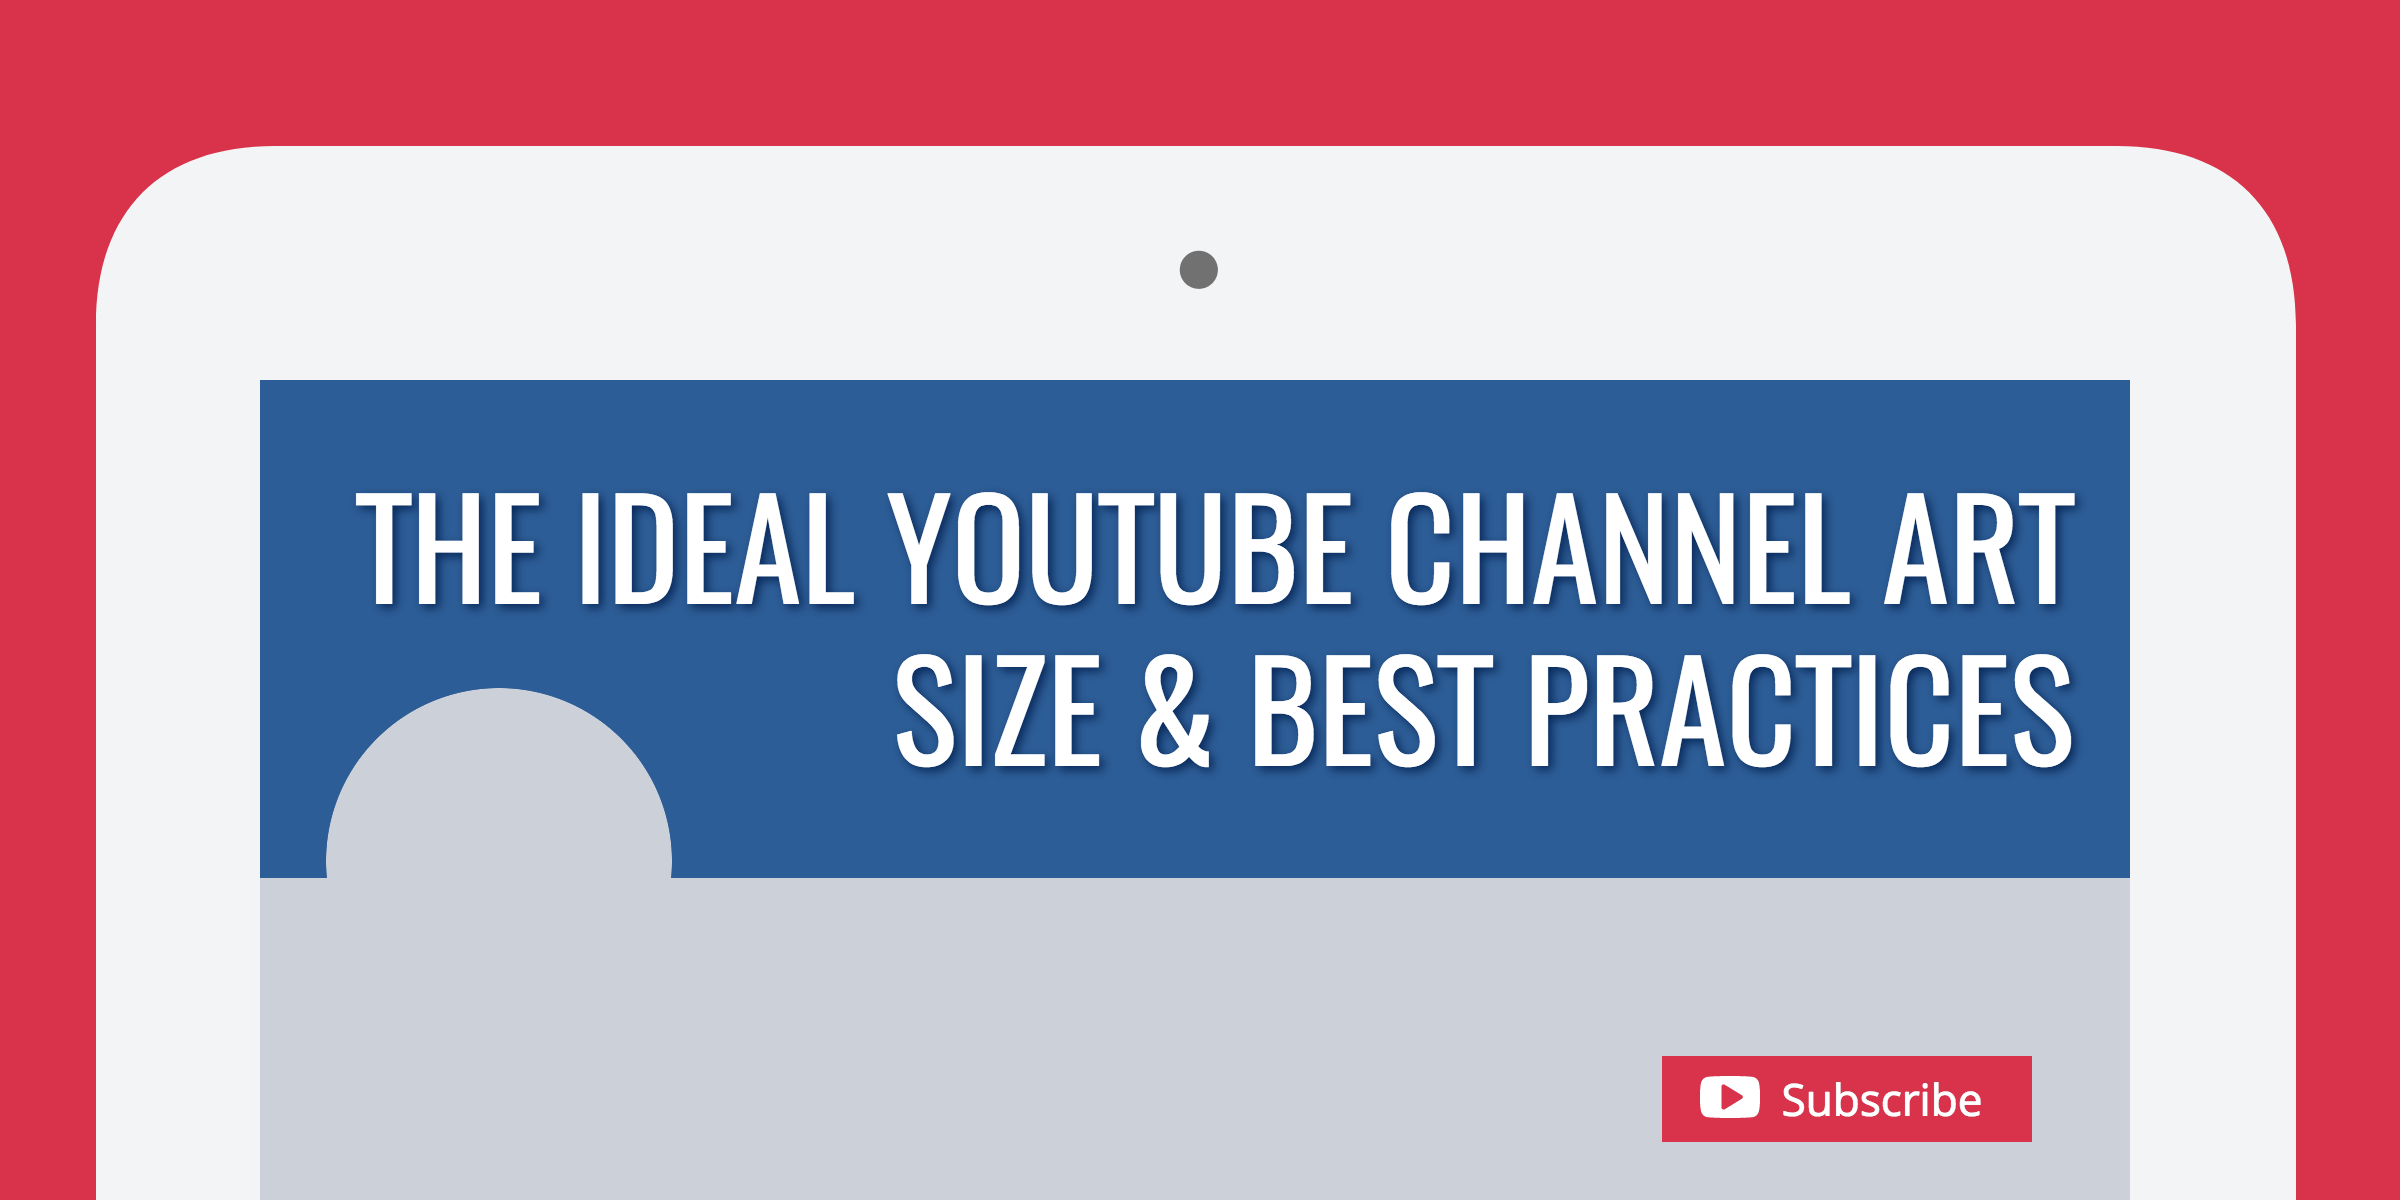 The Ideal YouTube Channel Art Size & Best Practices.